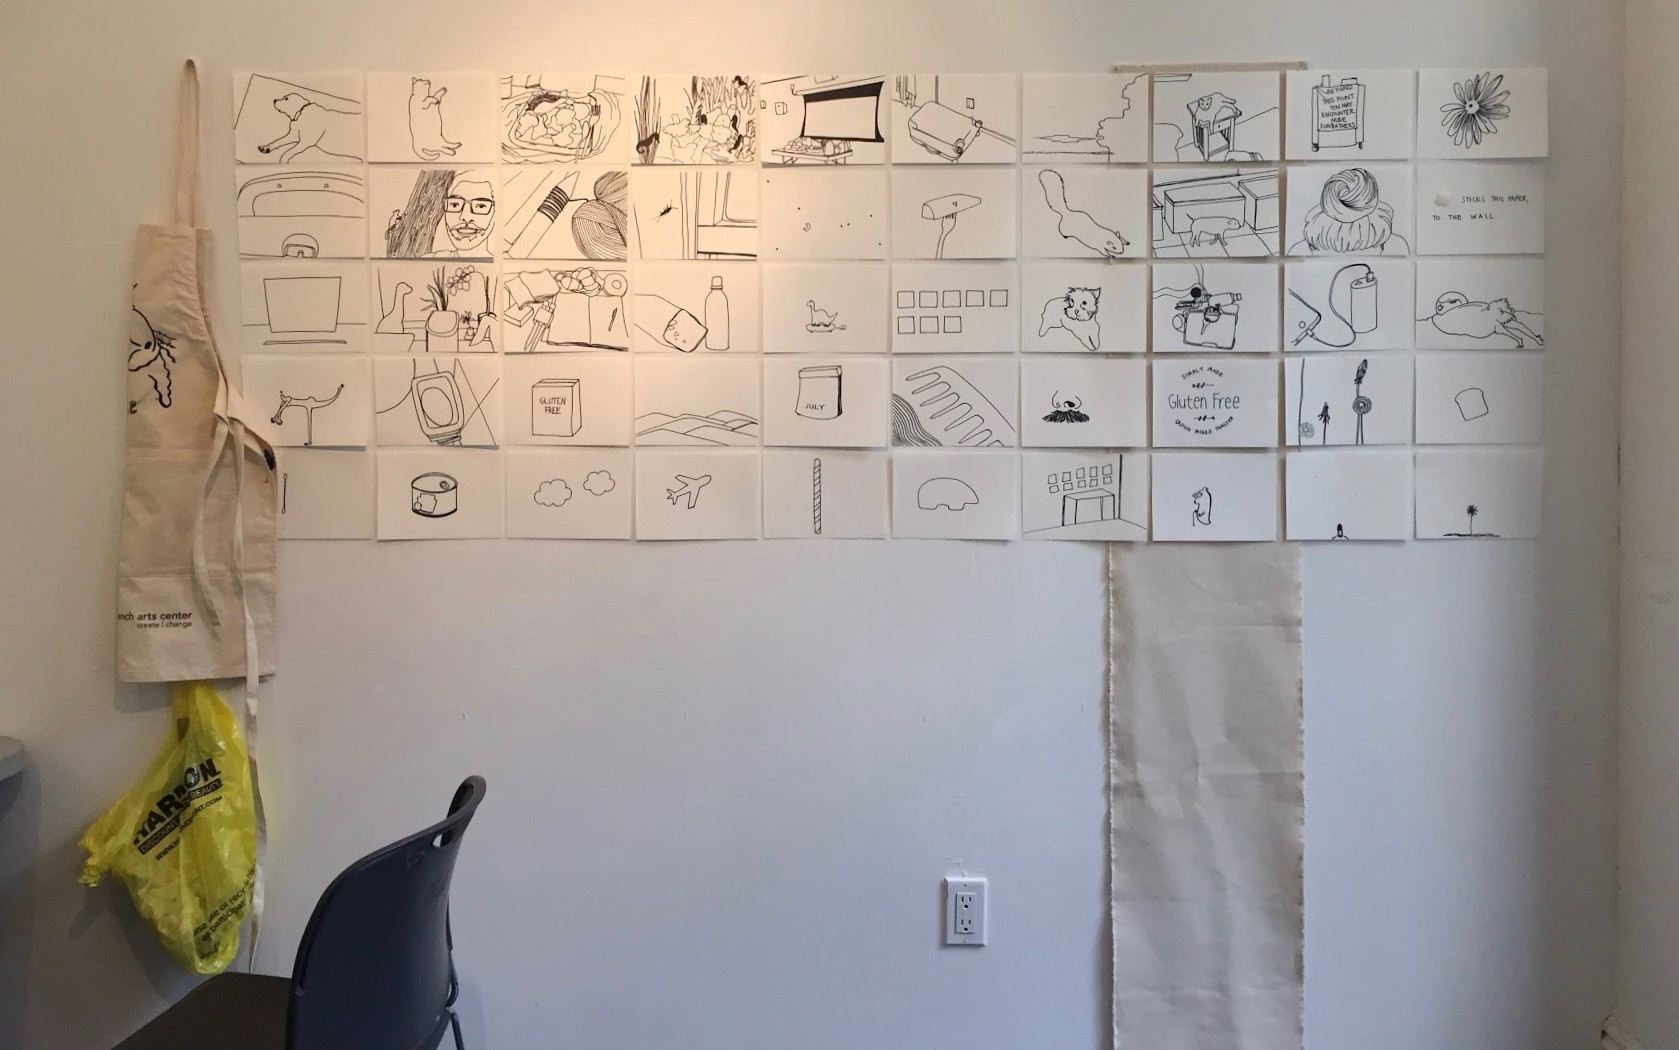 Sketches at Temporary Working Space